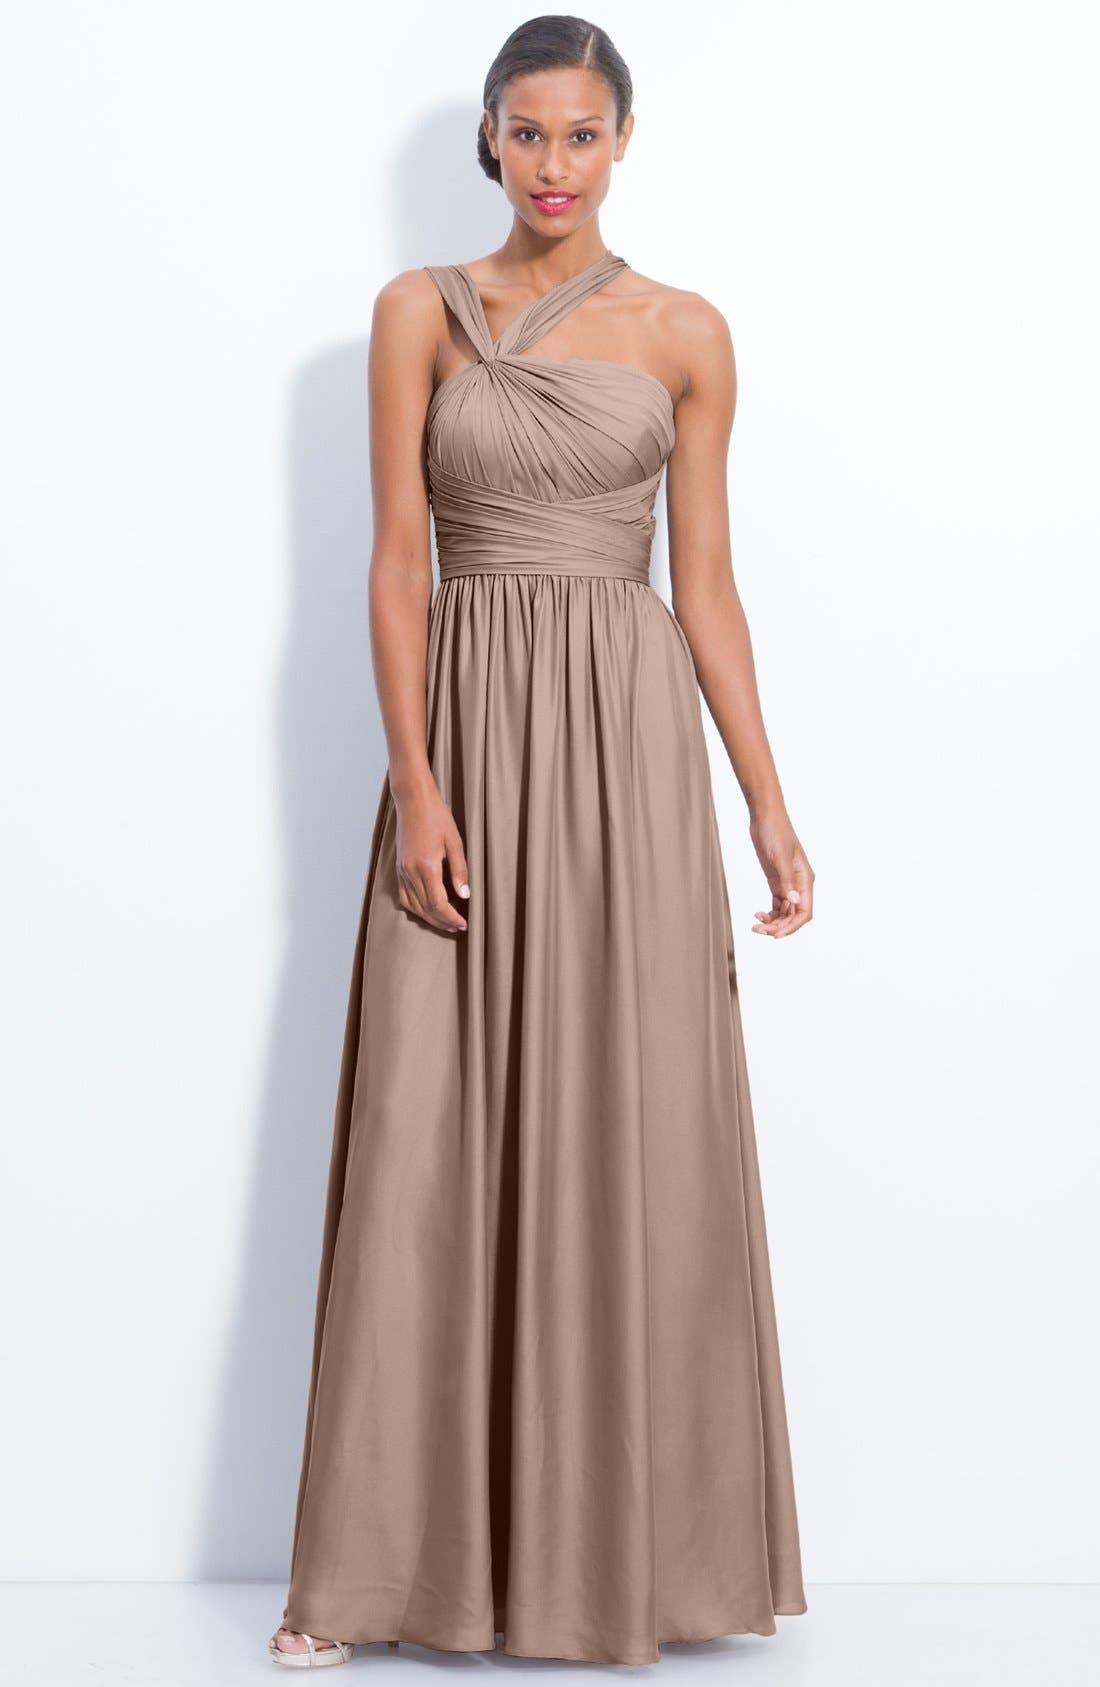 Alternate Image 1 Selected - Monique Lhuillier Bridesmaids Twist Shoulder Satin Chiffon Gown (Nordstrom Exclusive)